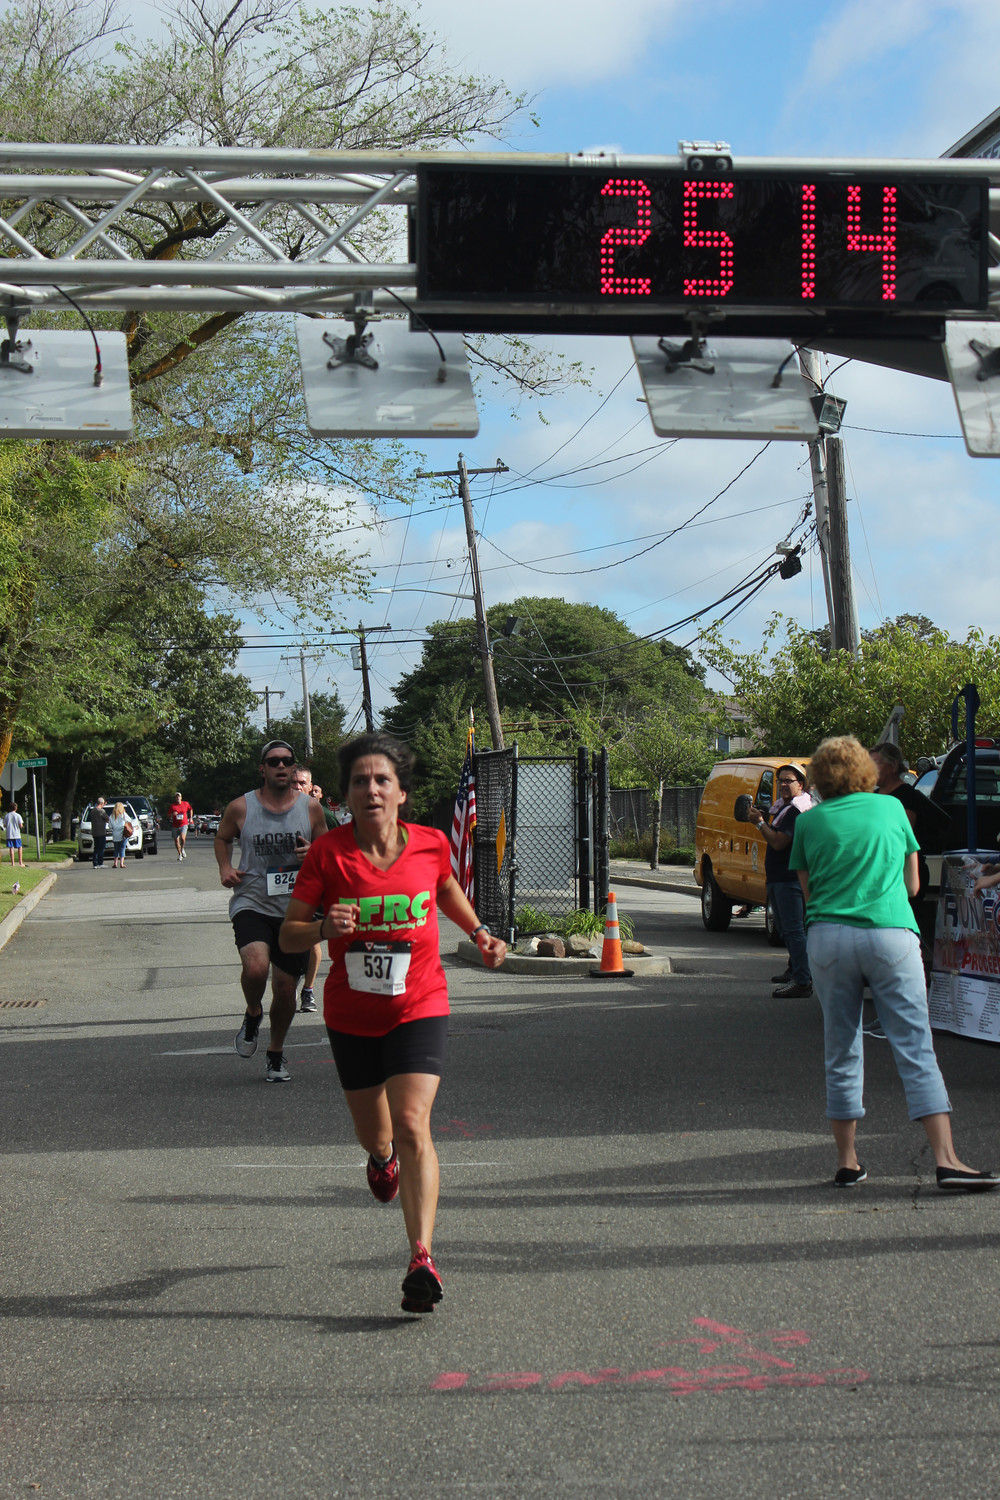 Lynbrook resident Jayne Paskoff paced all women with a time of 25 minutes, 14 seconds.